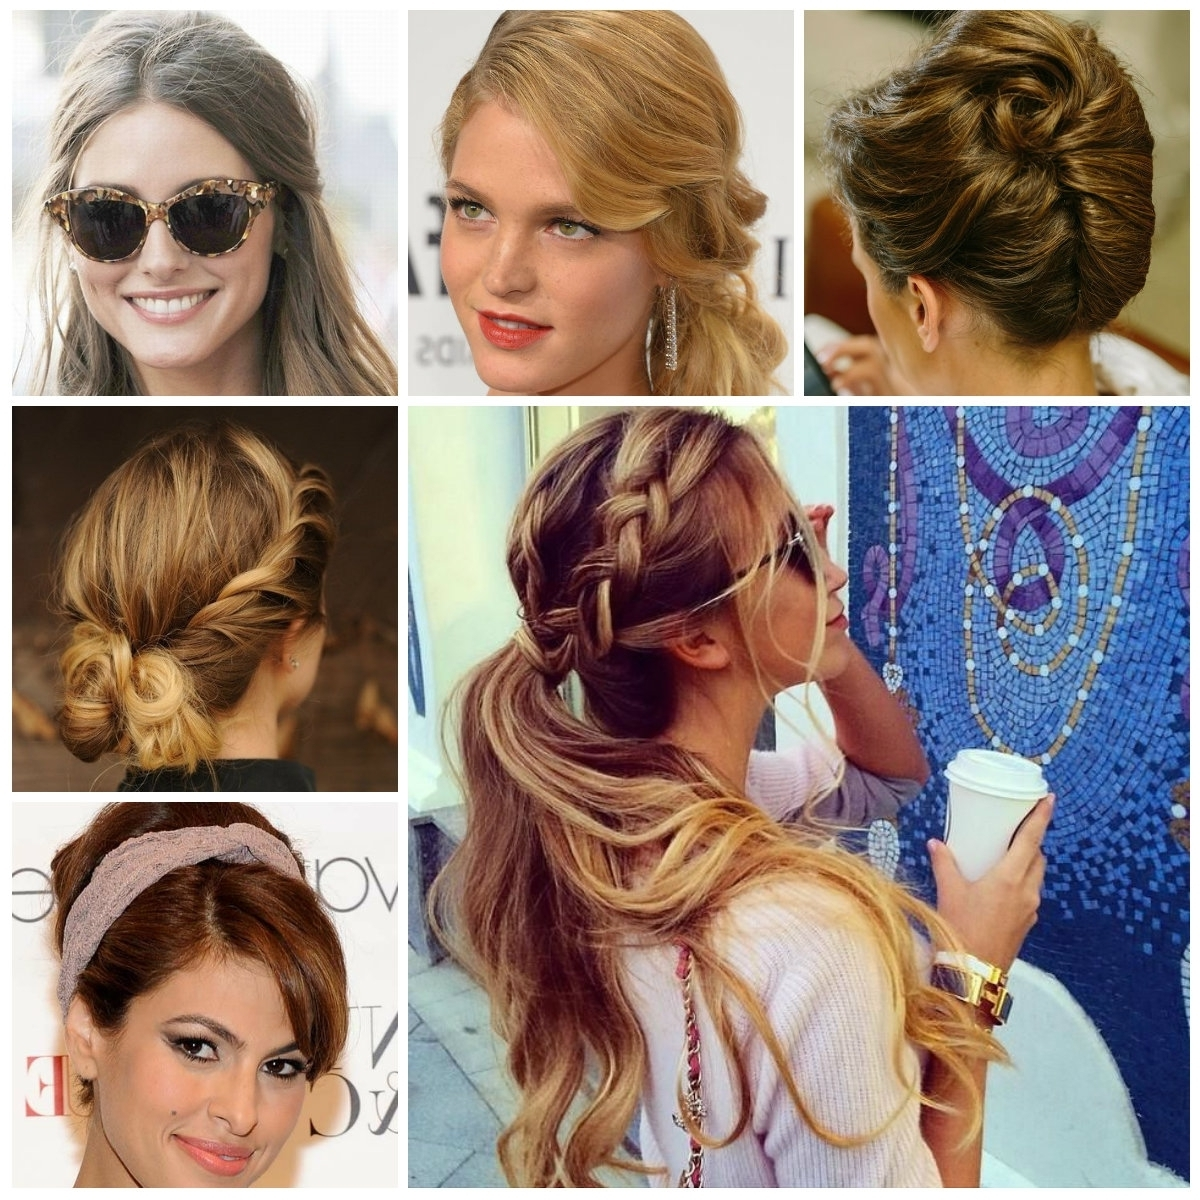 Easy Casual Updo Hairstyles For Long Hair – Women Medium Haircut With Regard To Cute And Easy Updo Hairstyles (View 8 of 15)